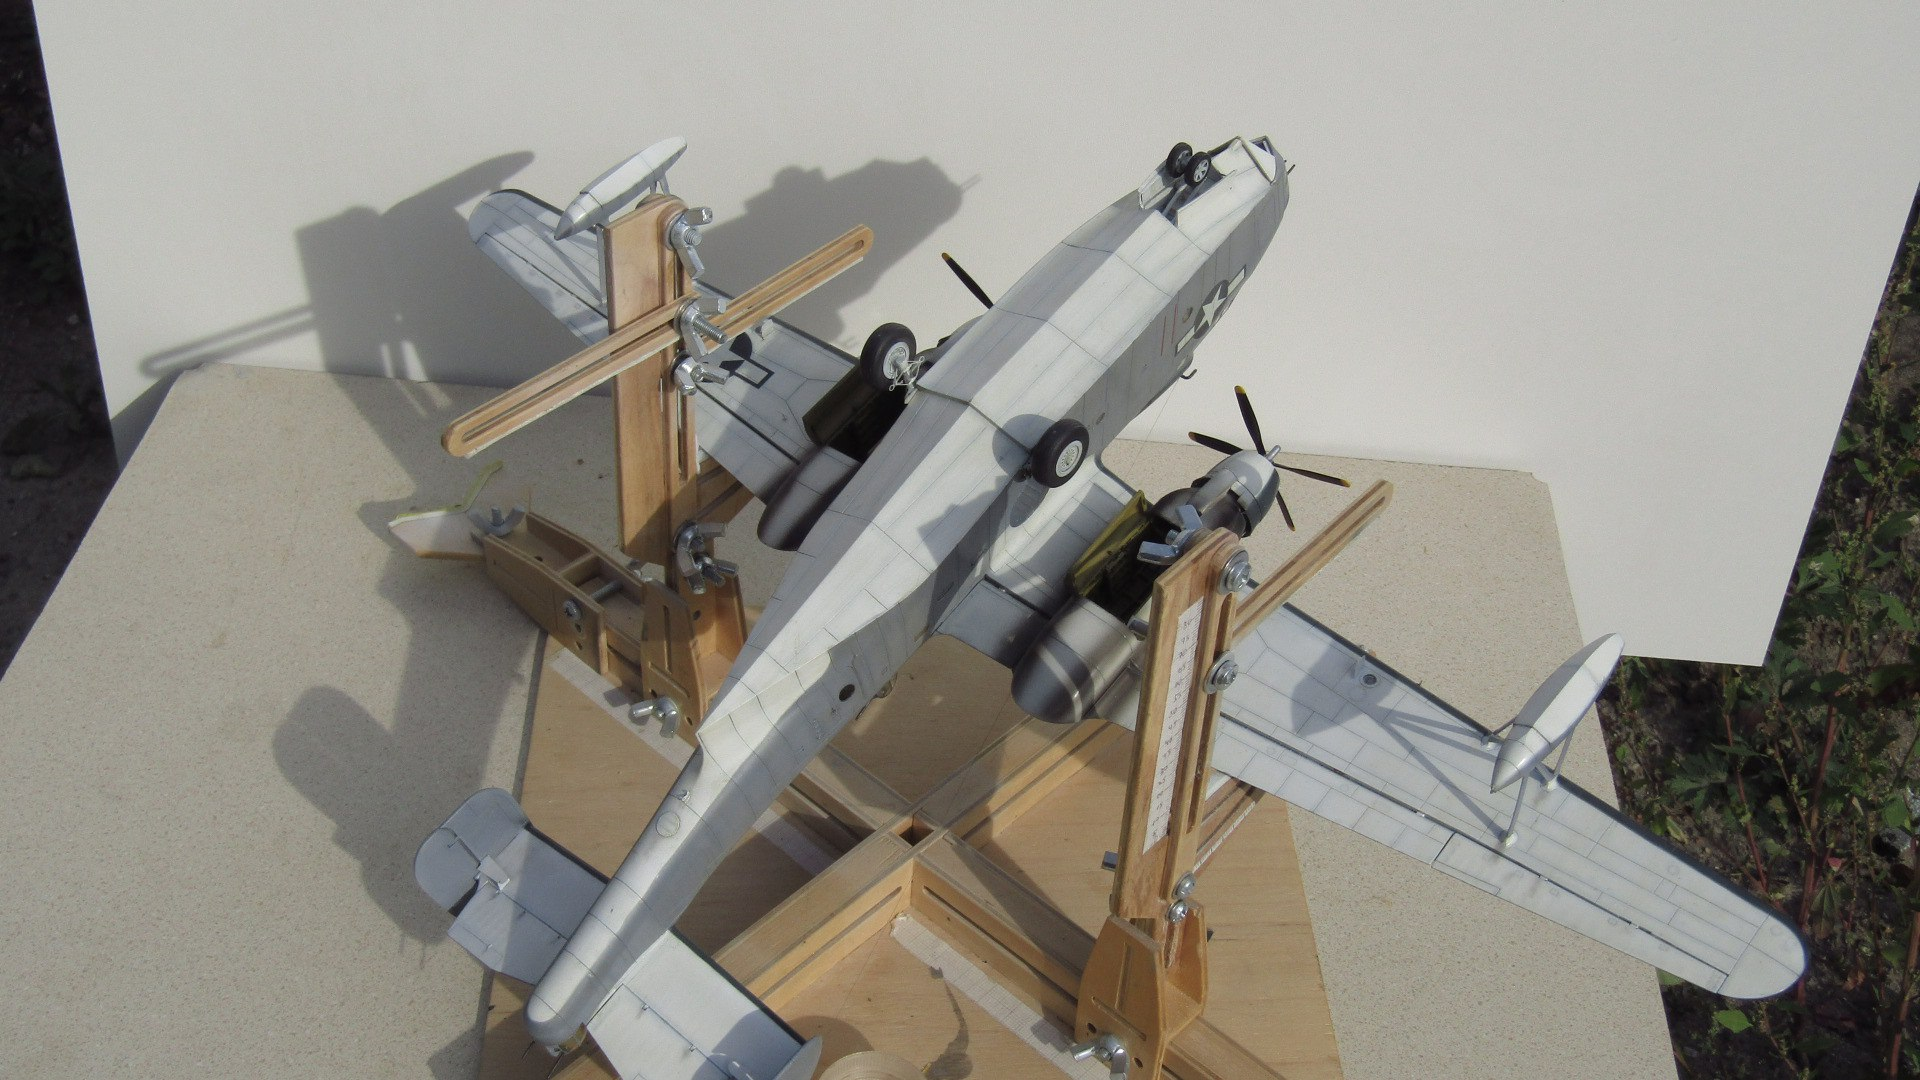 PBM-5 A MARINER 1/72 (MINICRAFT) - Страница 2 FuINpXurRig